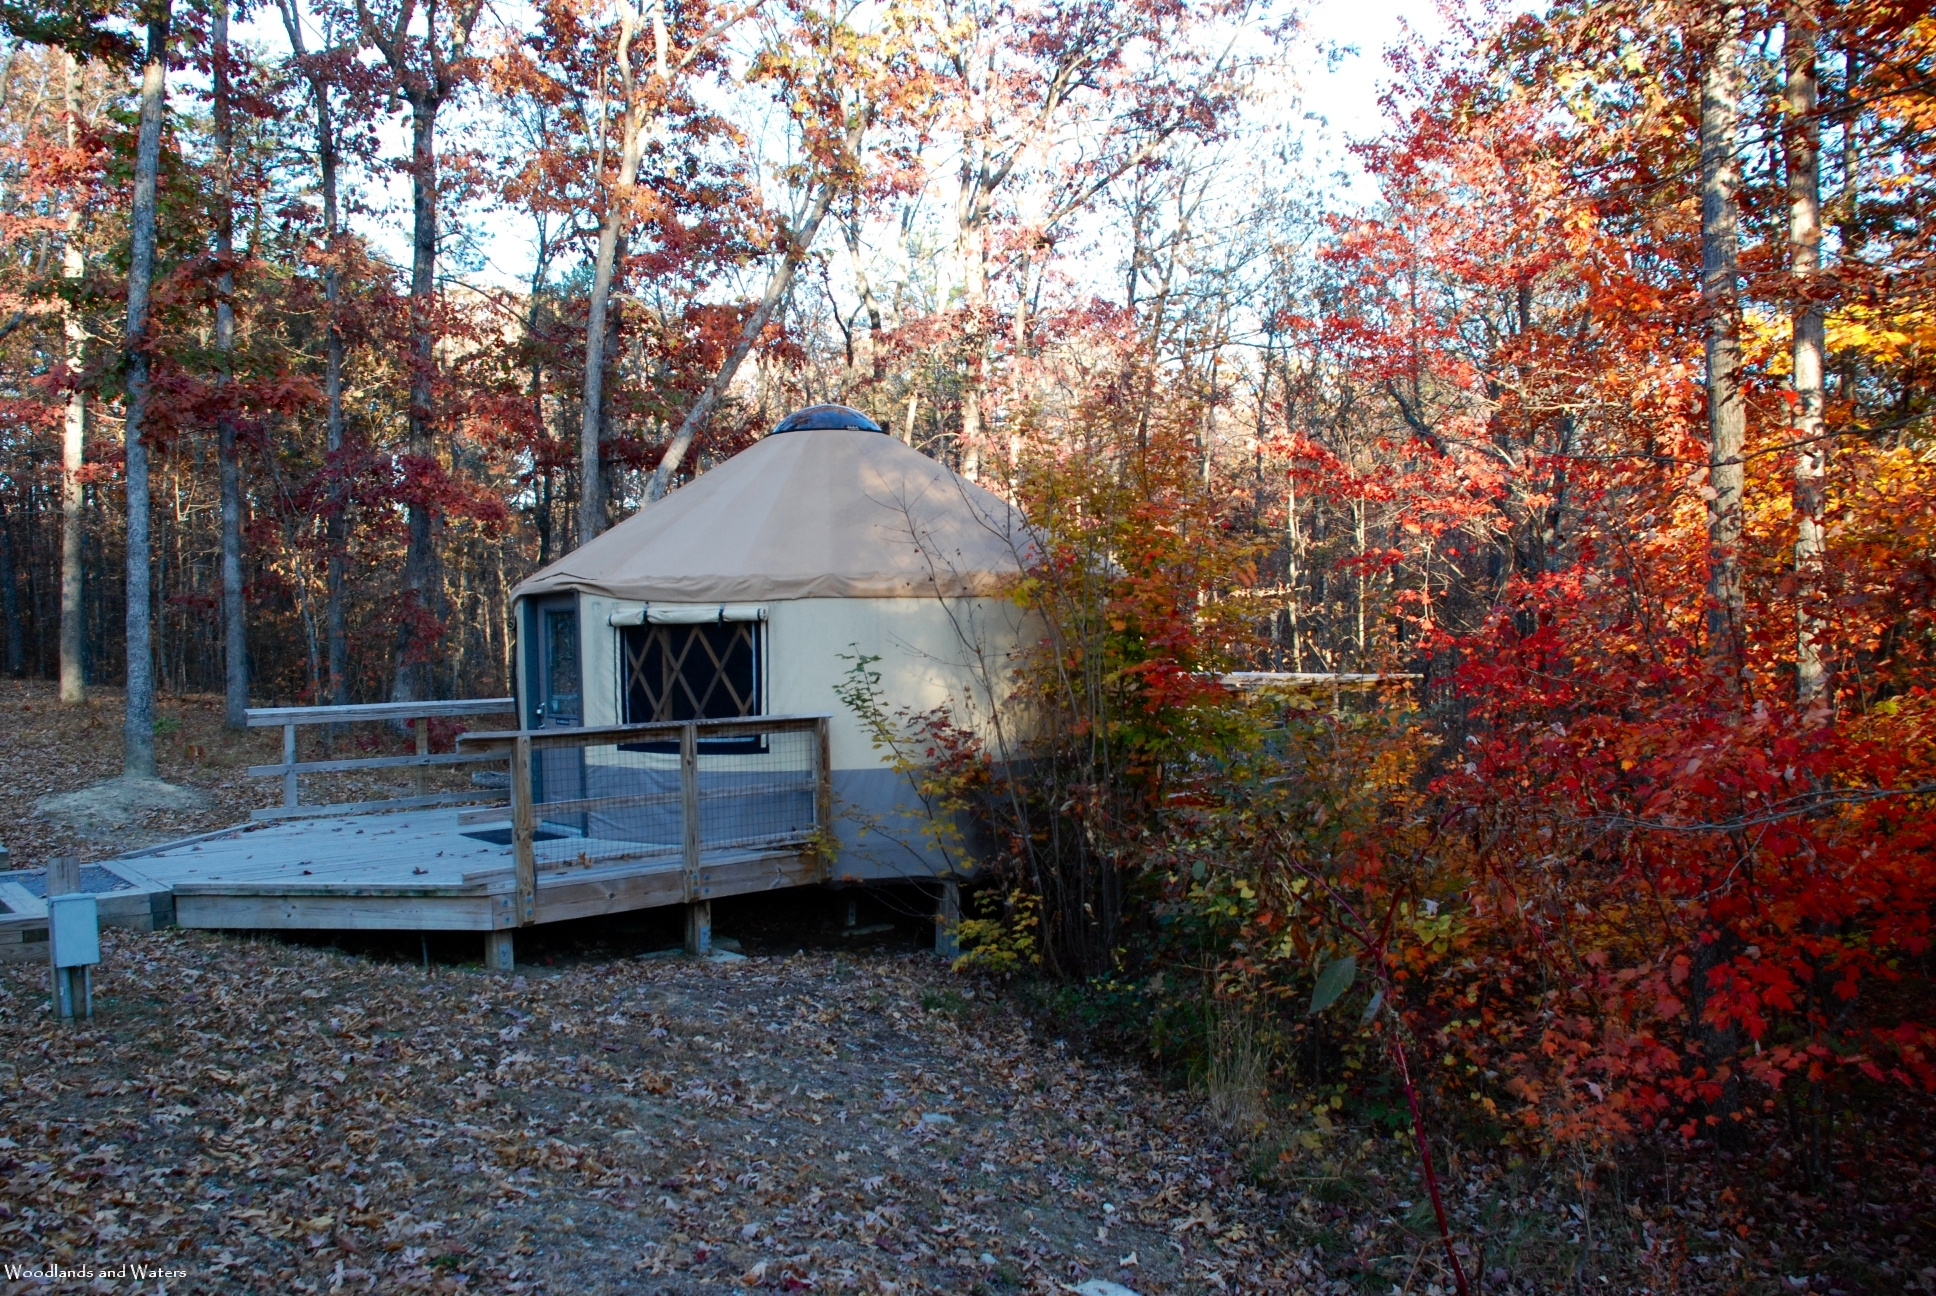 Cloudland canyon state park woodlands and waters so whats a yurt you ask in its simplest form its a round roofed tent typically built on a wooden platform at cloudland canyon they are a publicscrutiny Gallery